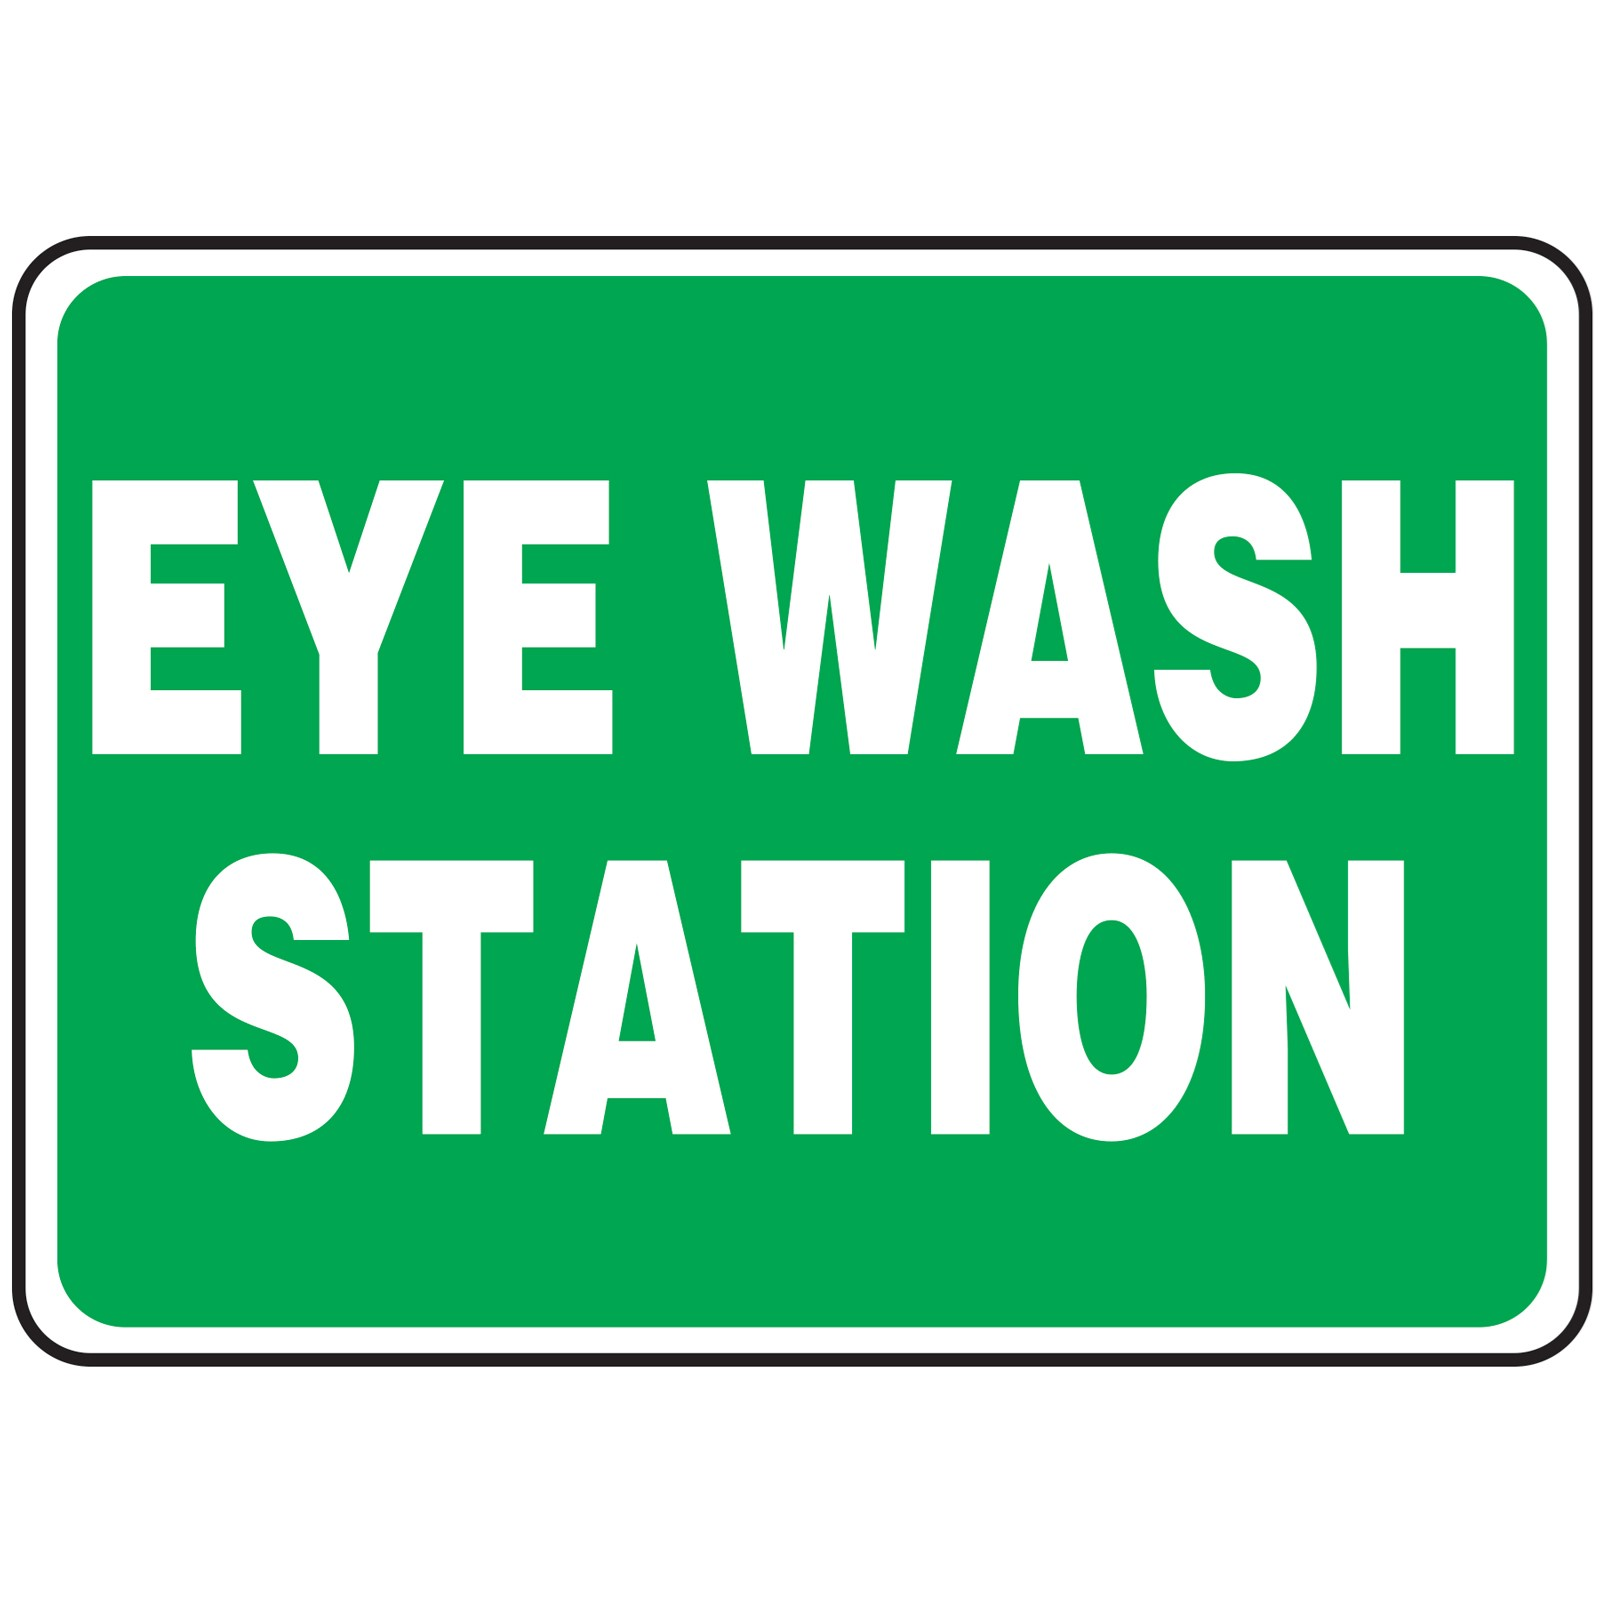 ns signs eye wash station osha safety sign - Eye Wash Station Osha